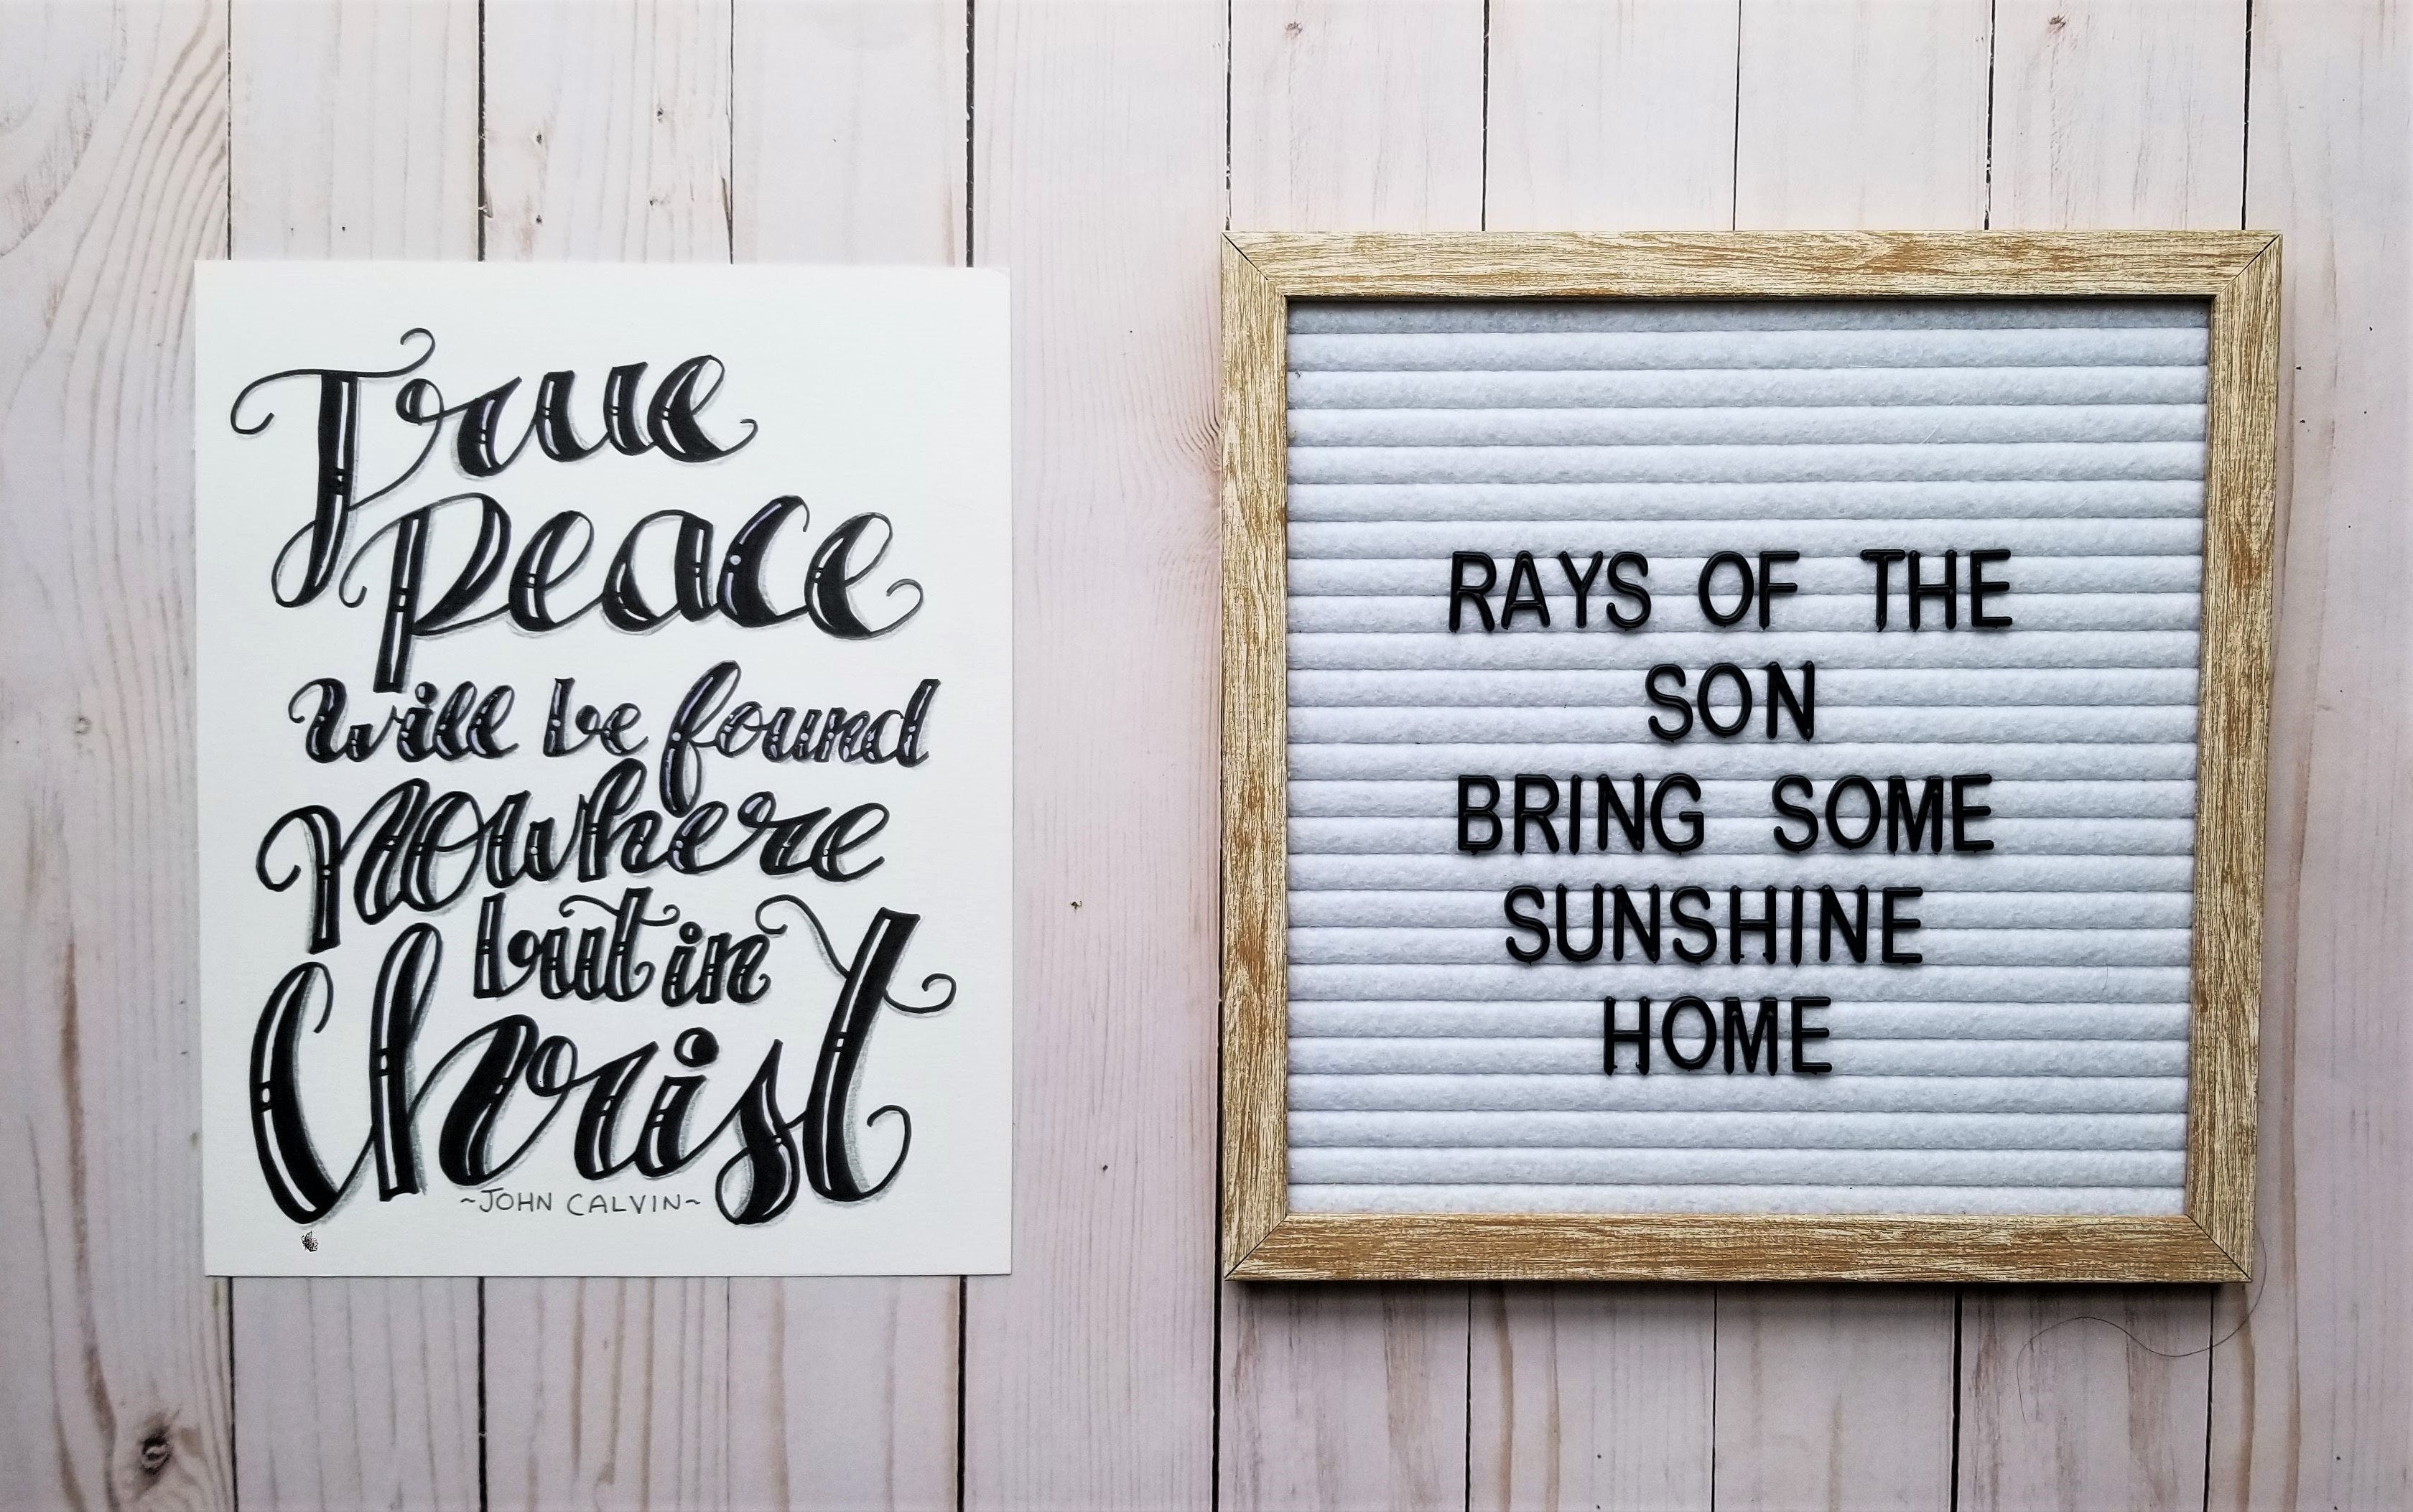 True Peace Typography - Rays of the Son